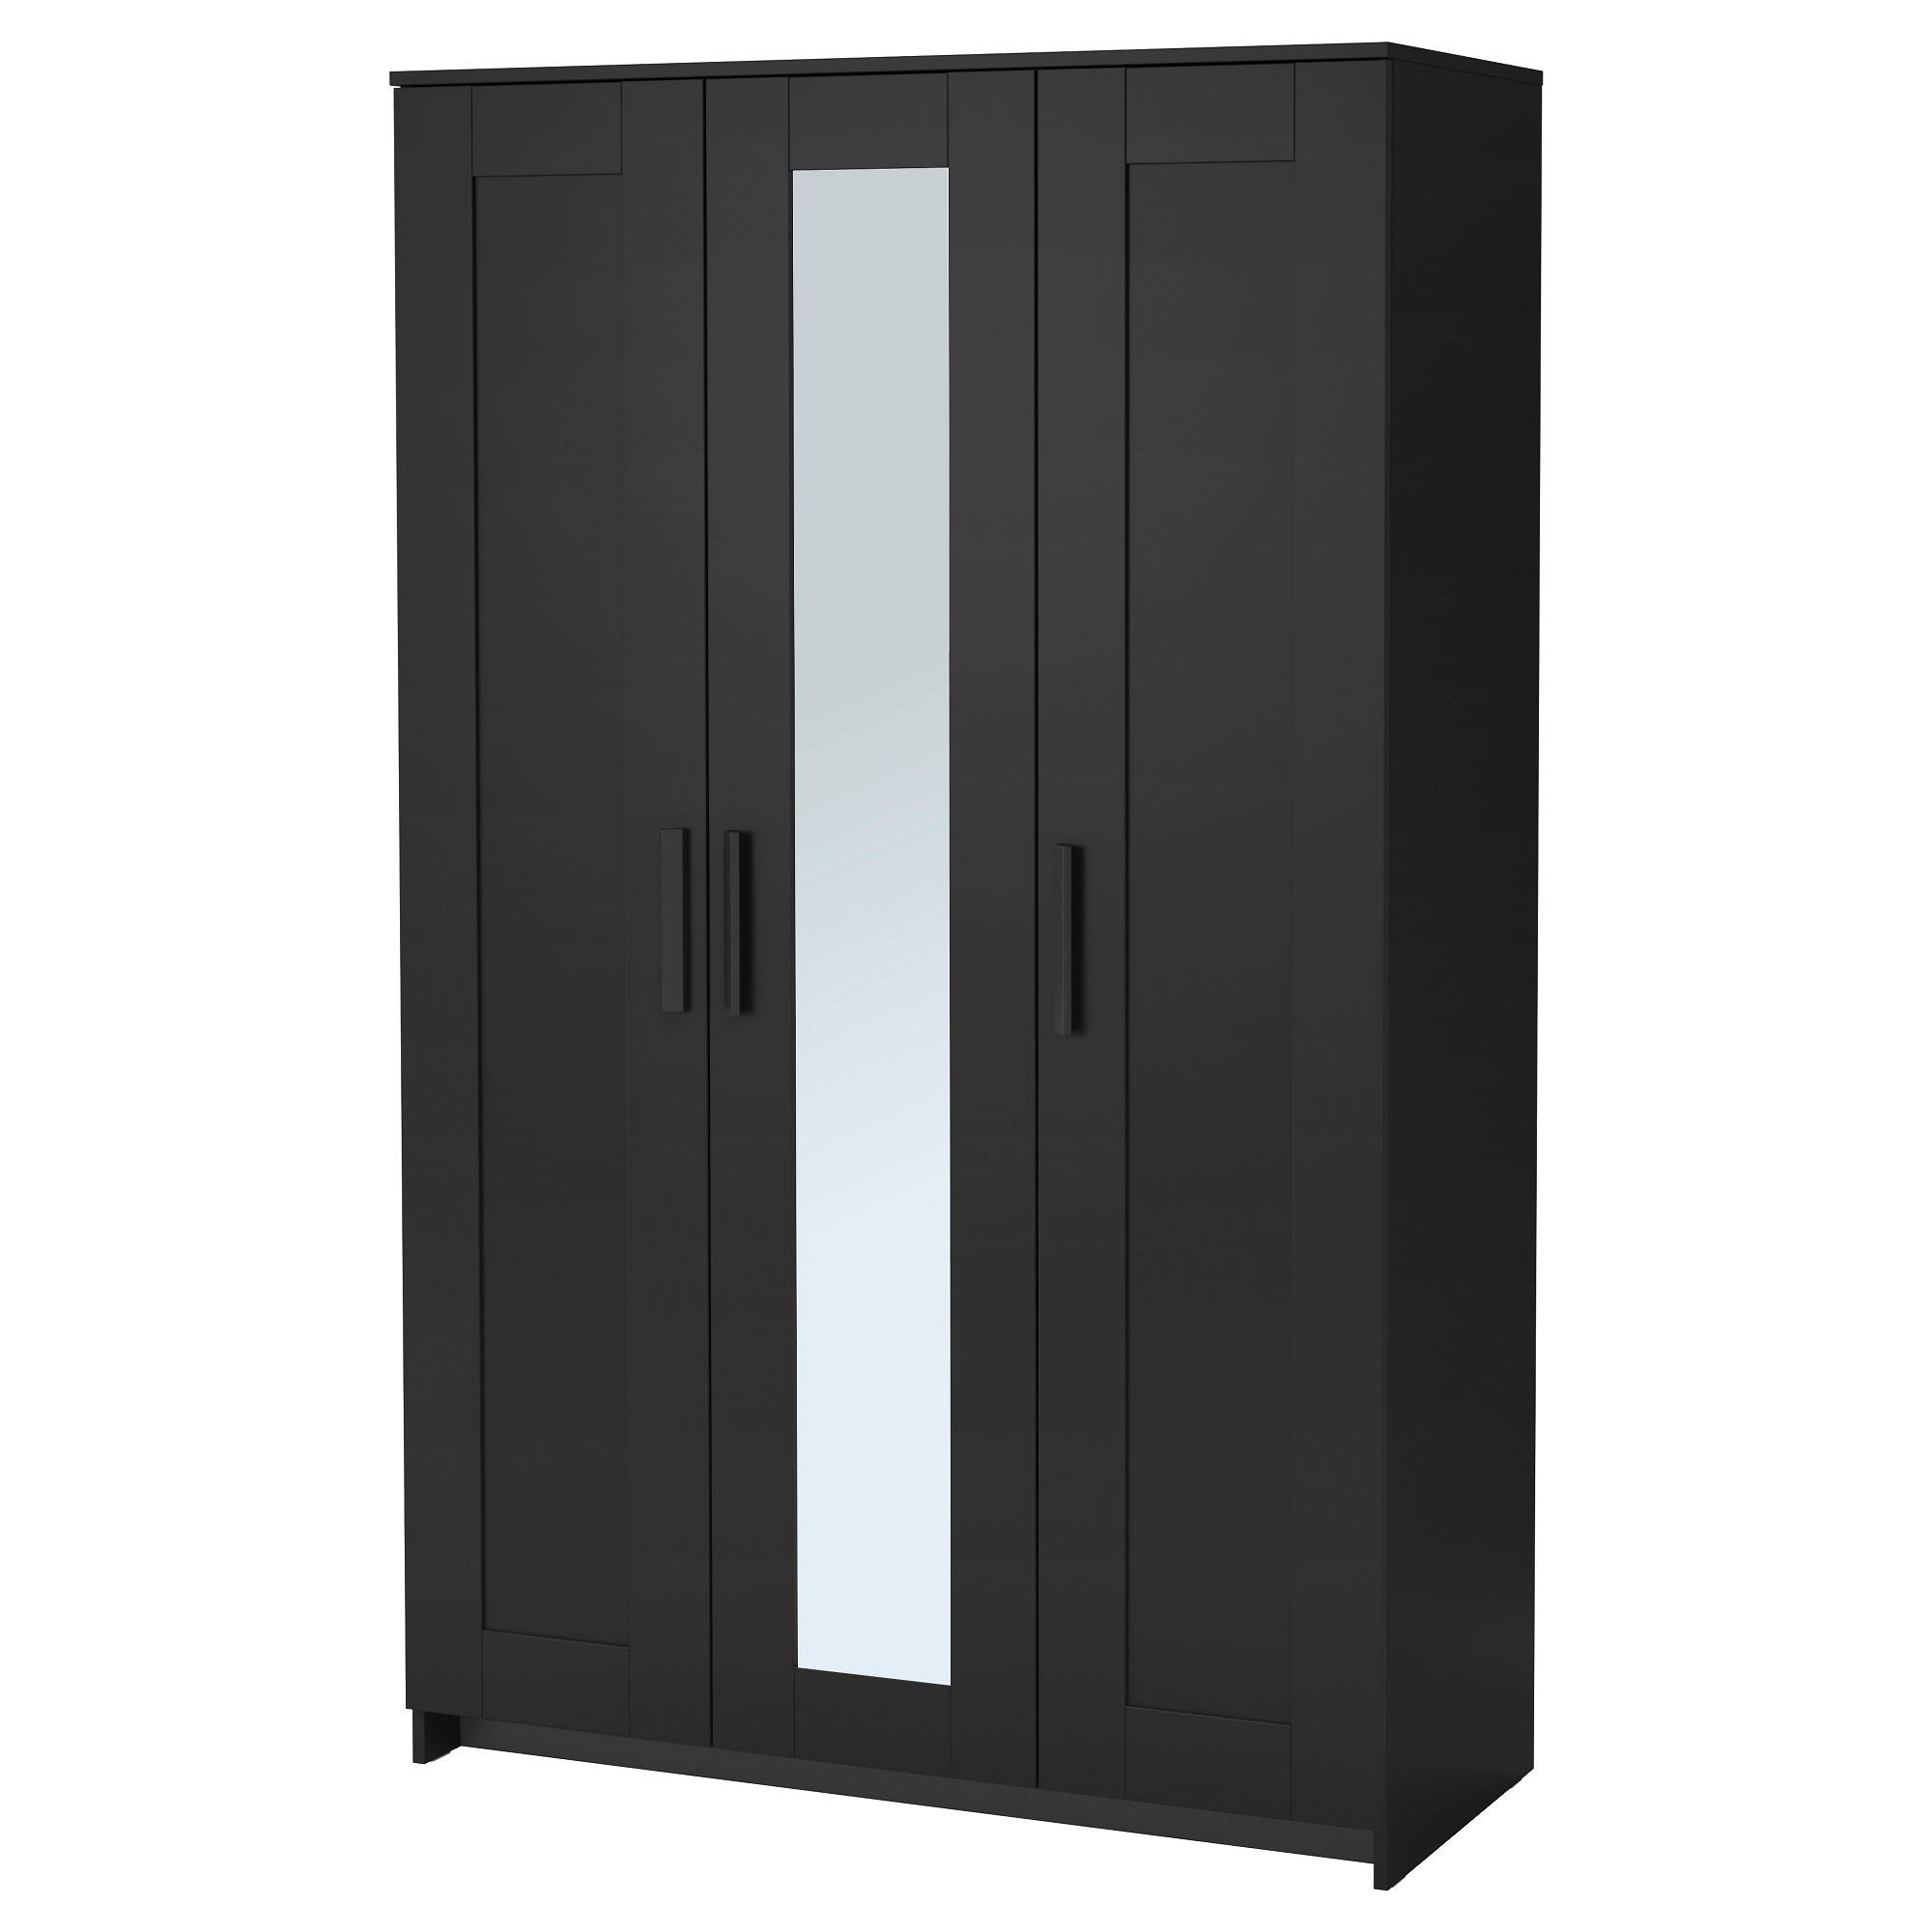 Brimnes Wardrobe With 3 Doors - Black - Ikea intended for Black Wardrobes With Mirror (Image 6 of 15)